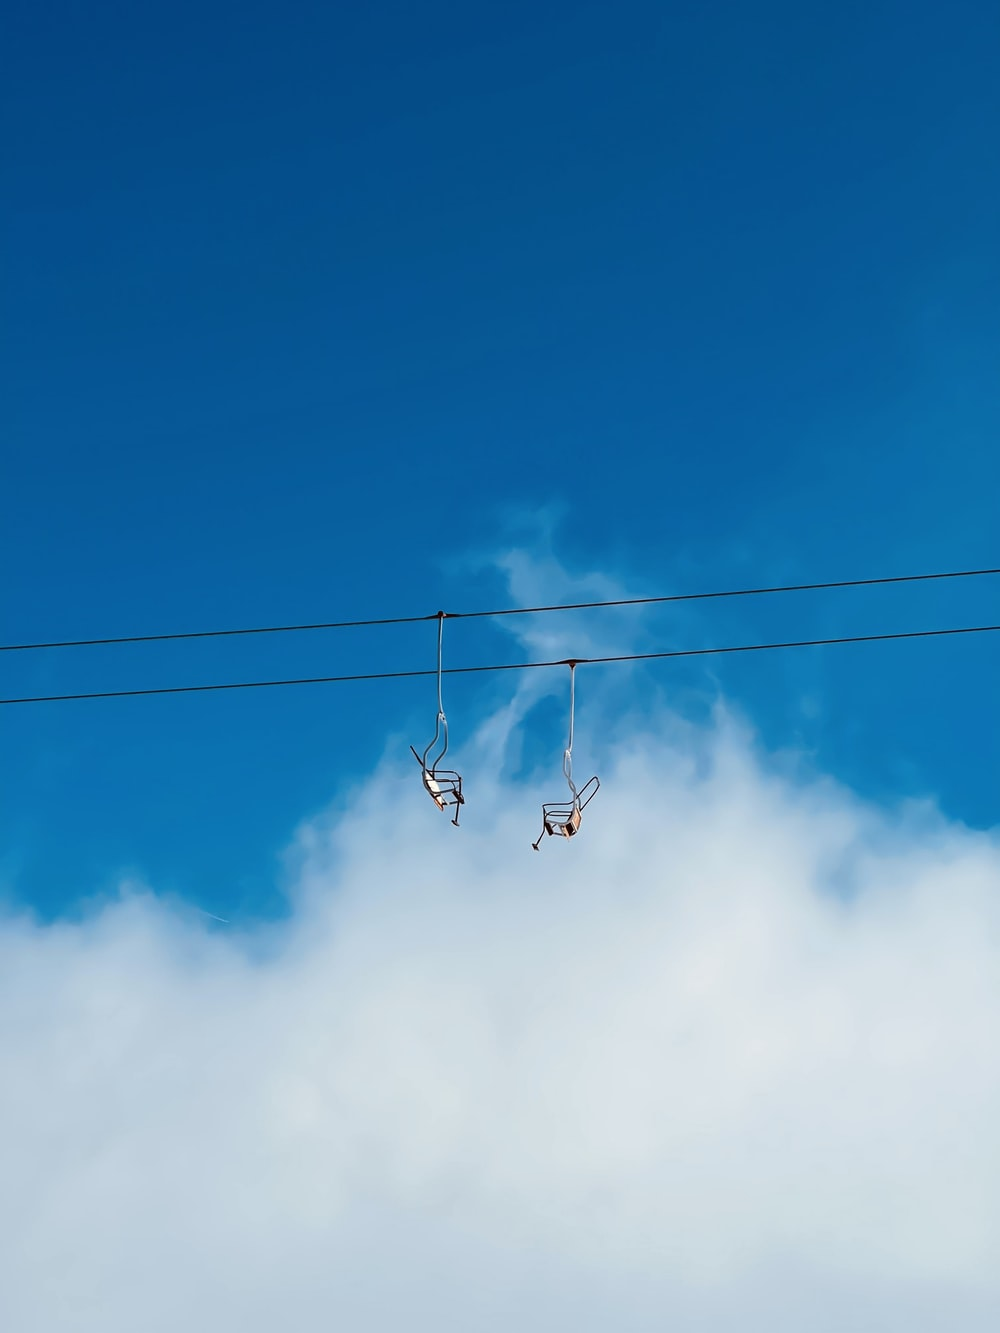 black cable car under blue sky during daytime